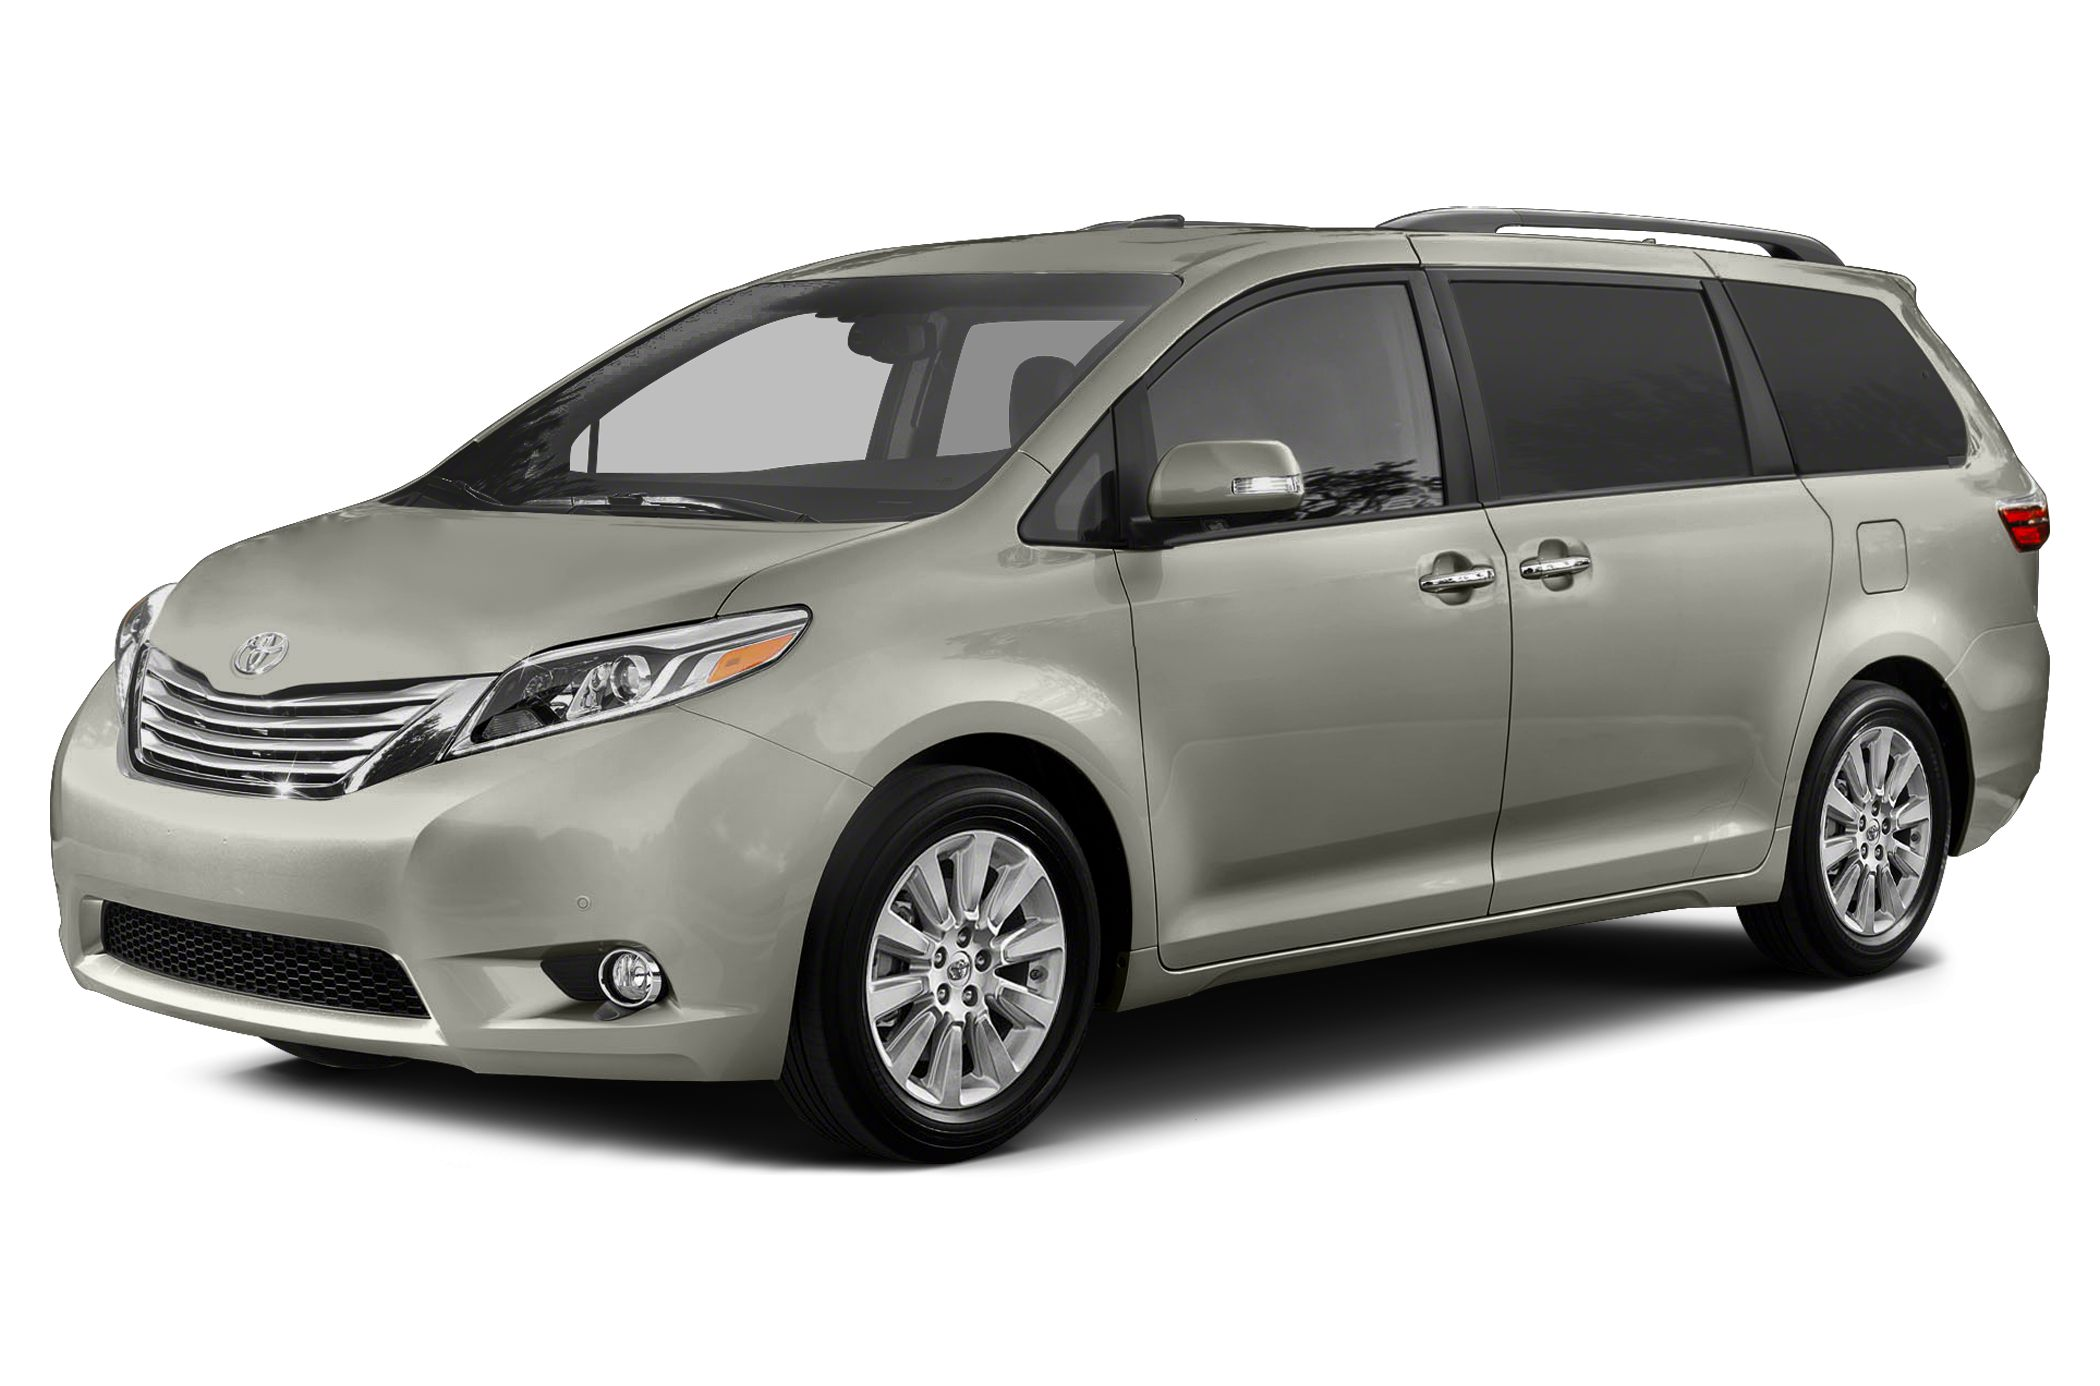 2015 Toyota Sienna LE Minivan for sale in Allentown for $35,478 with 0 miles